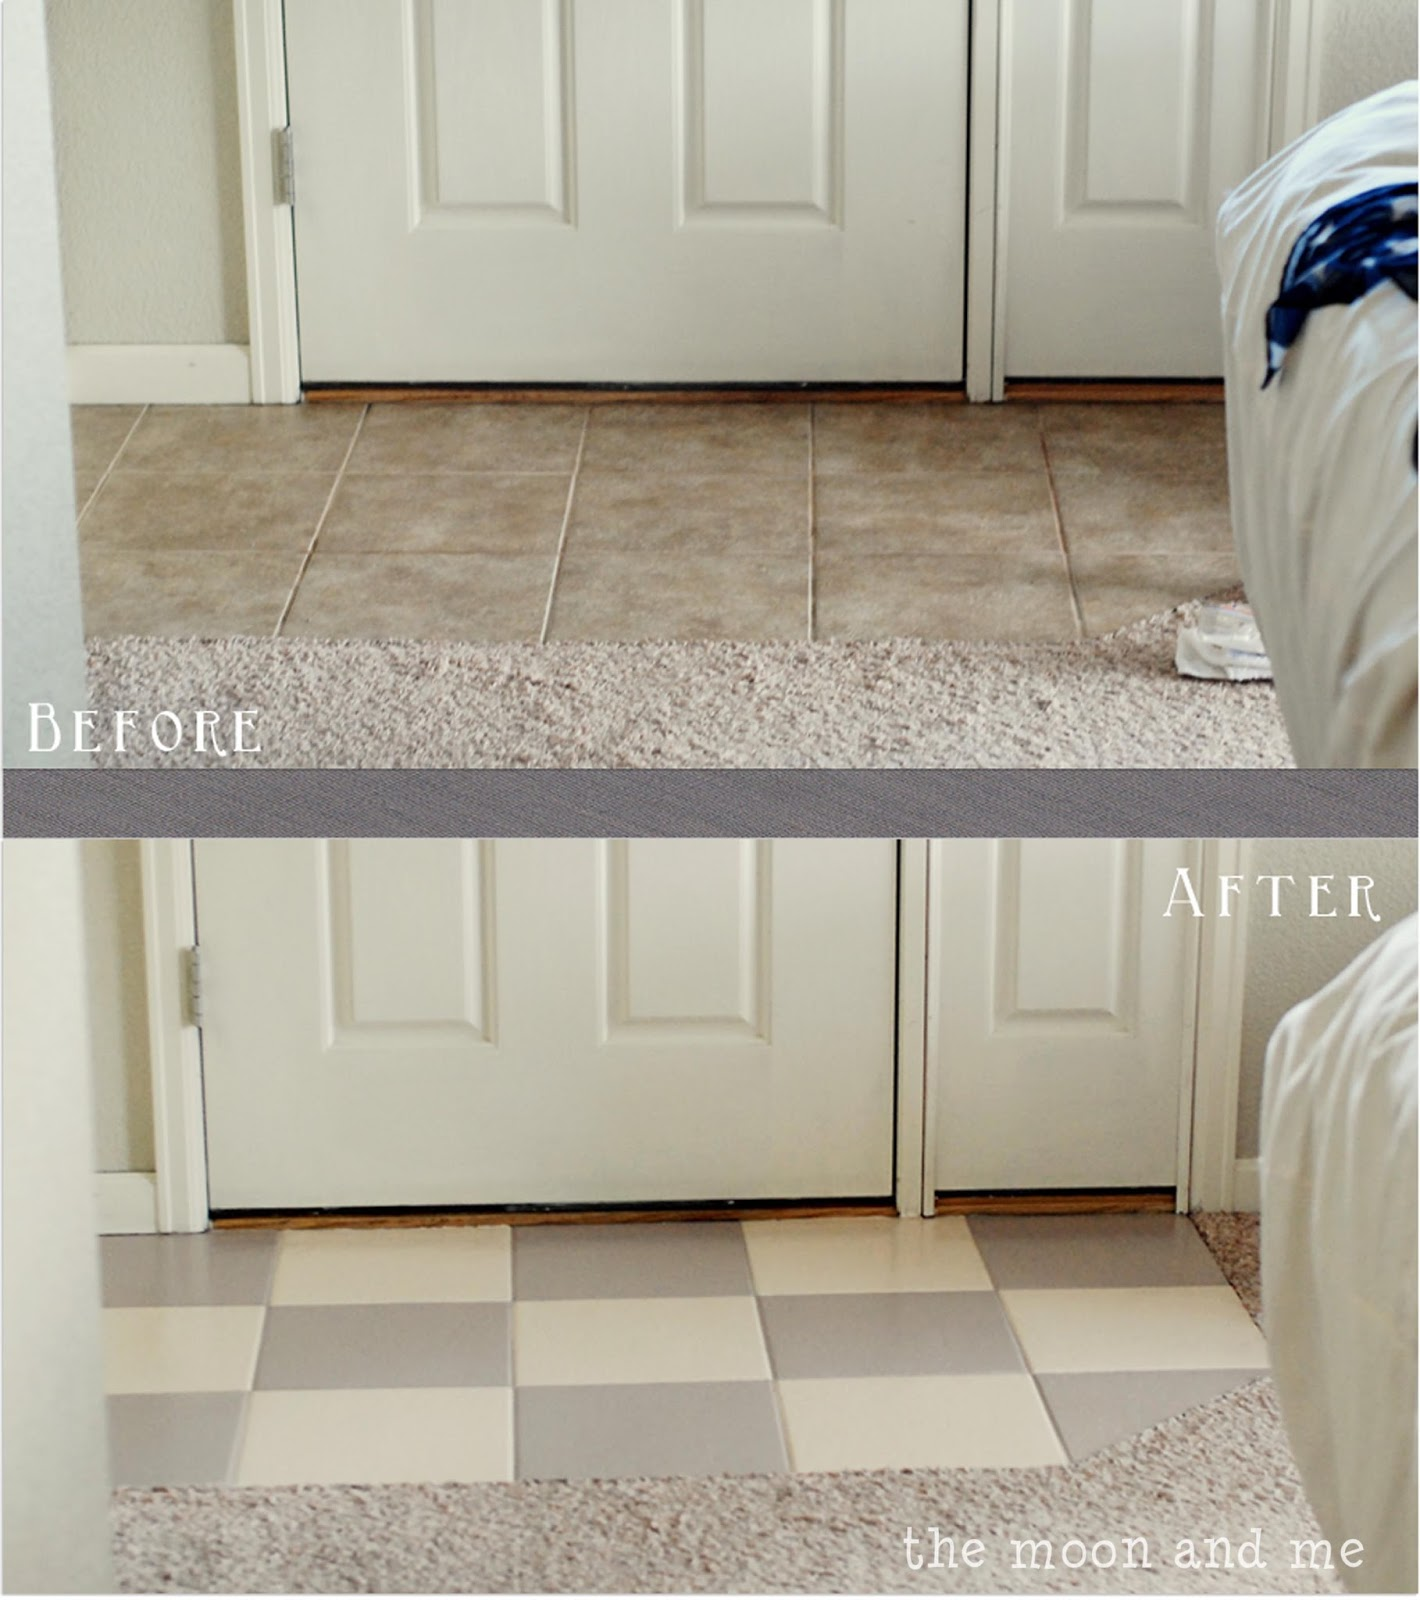 Painting Bathroom Tile Floor the moon and me: painting a tile floor ~ tips and grumbles